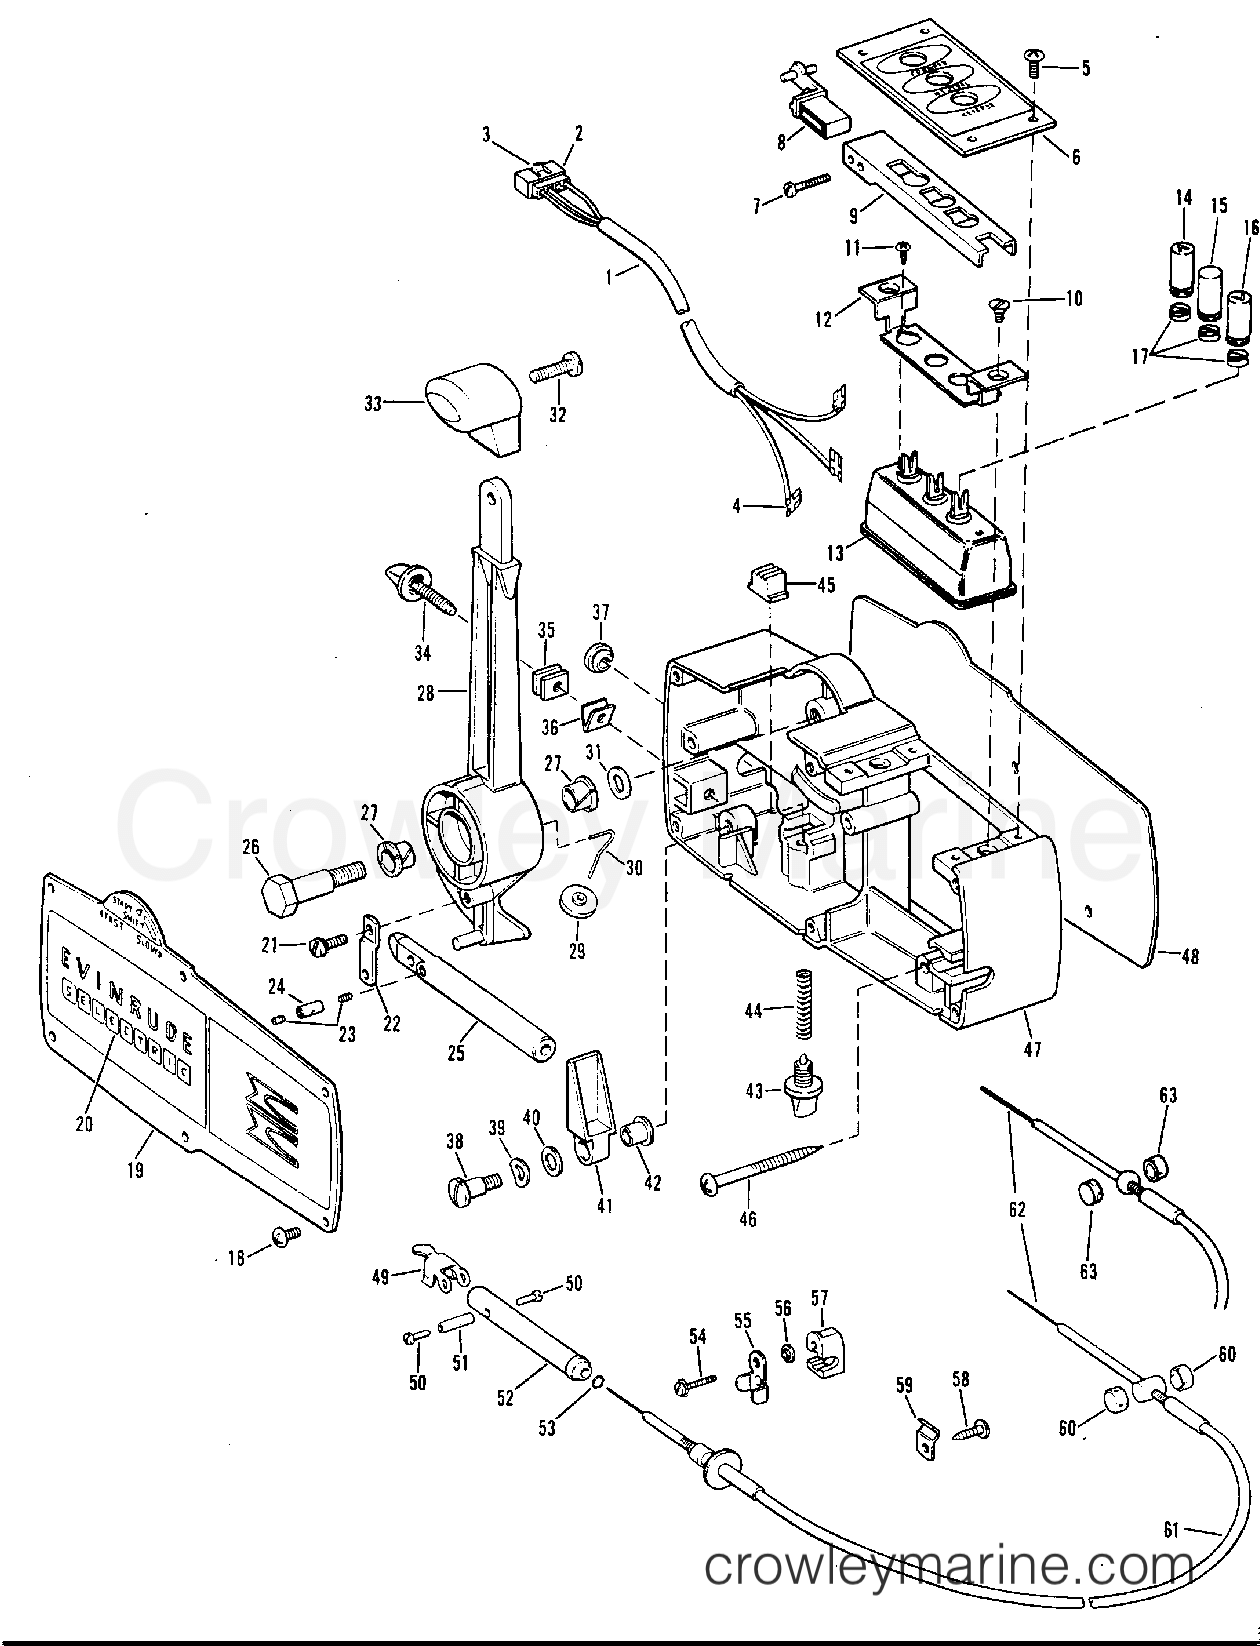 omc shifter diagram  omc  free engine image for user Boat Electrical Wiring Diagrams YUZZj0Ha